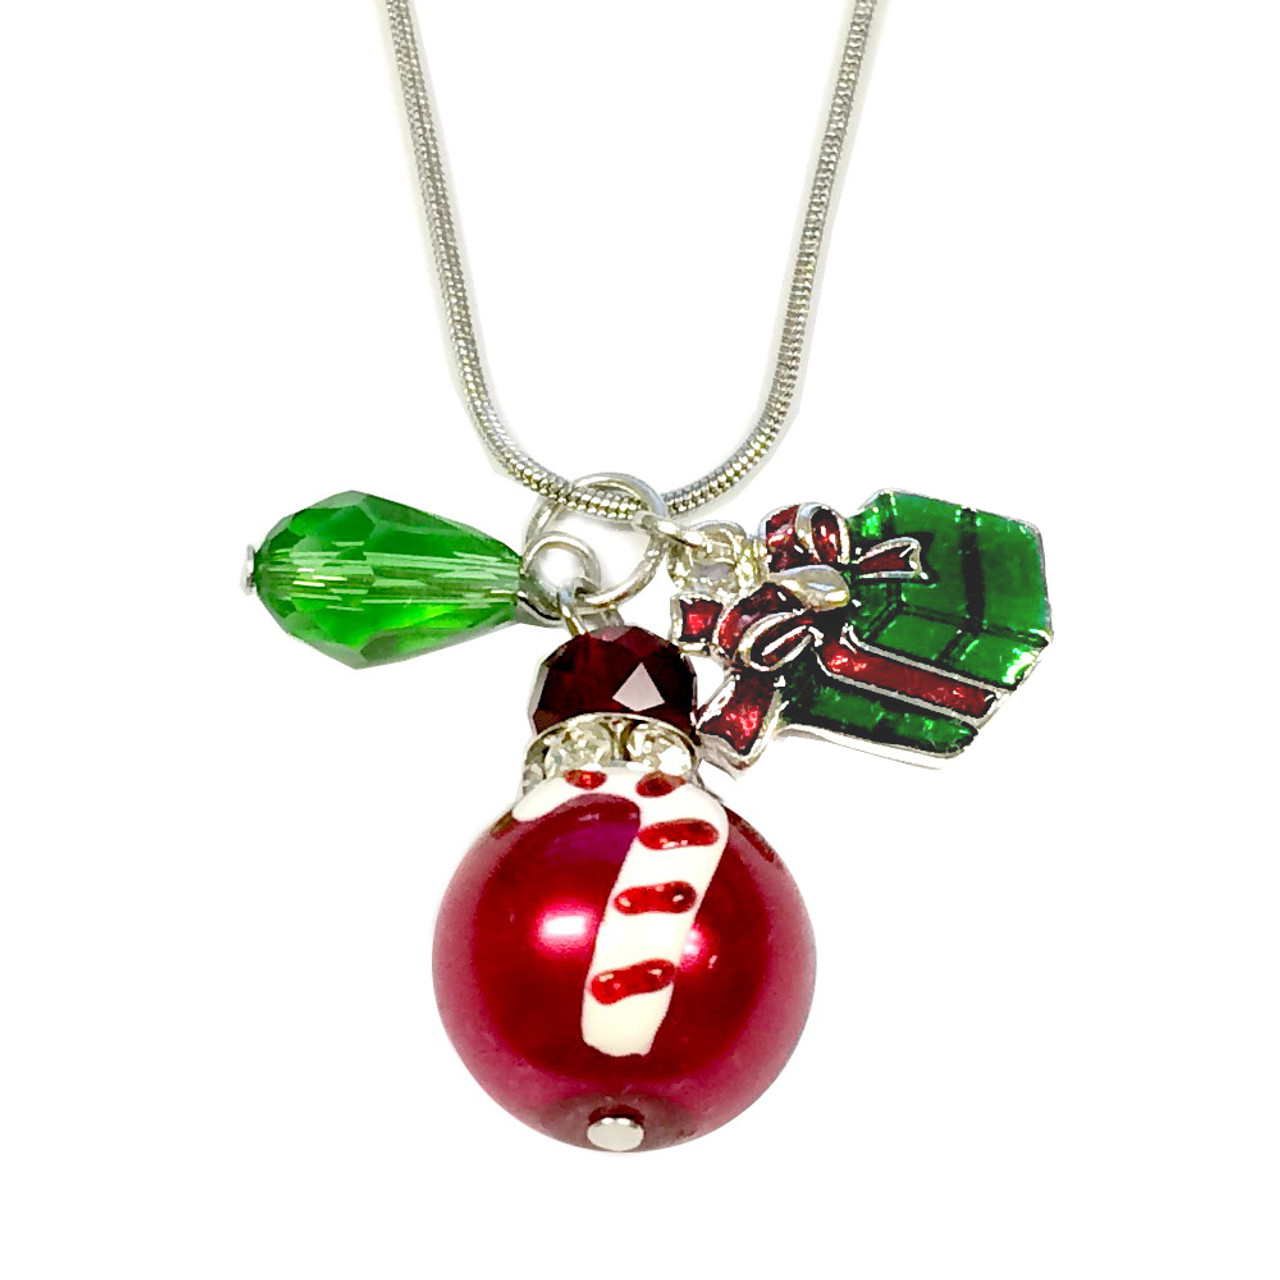 Candy  cane  charm  necklace  pendant  jewelry  jewellery  kids  gift  girls